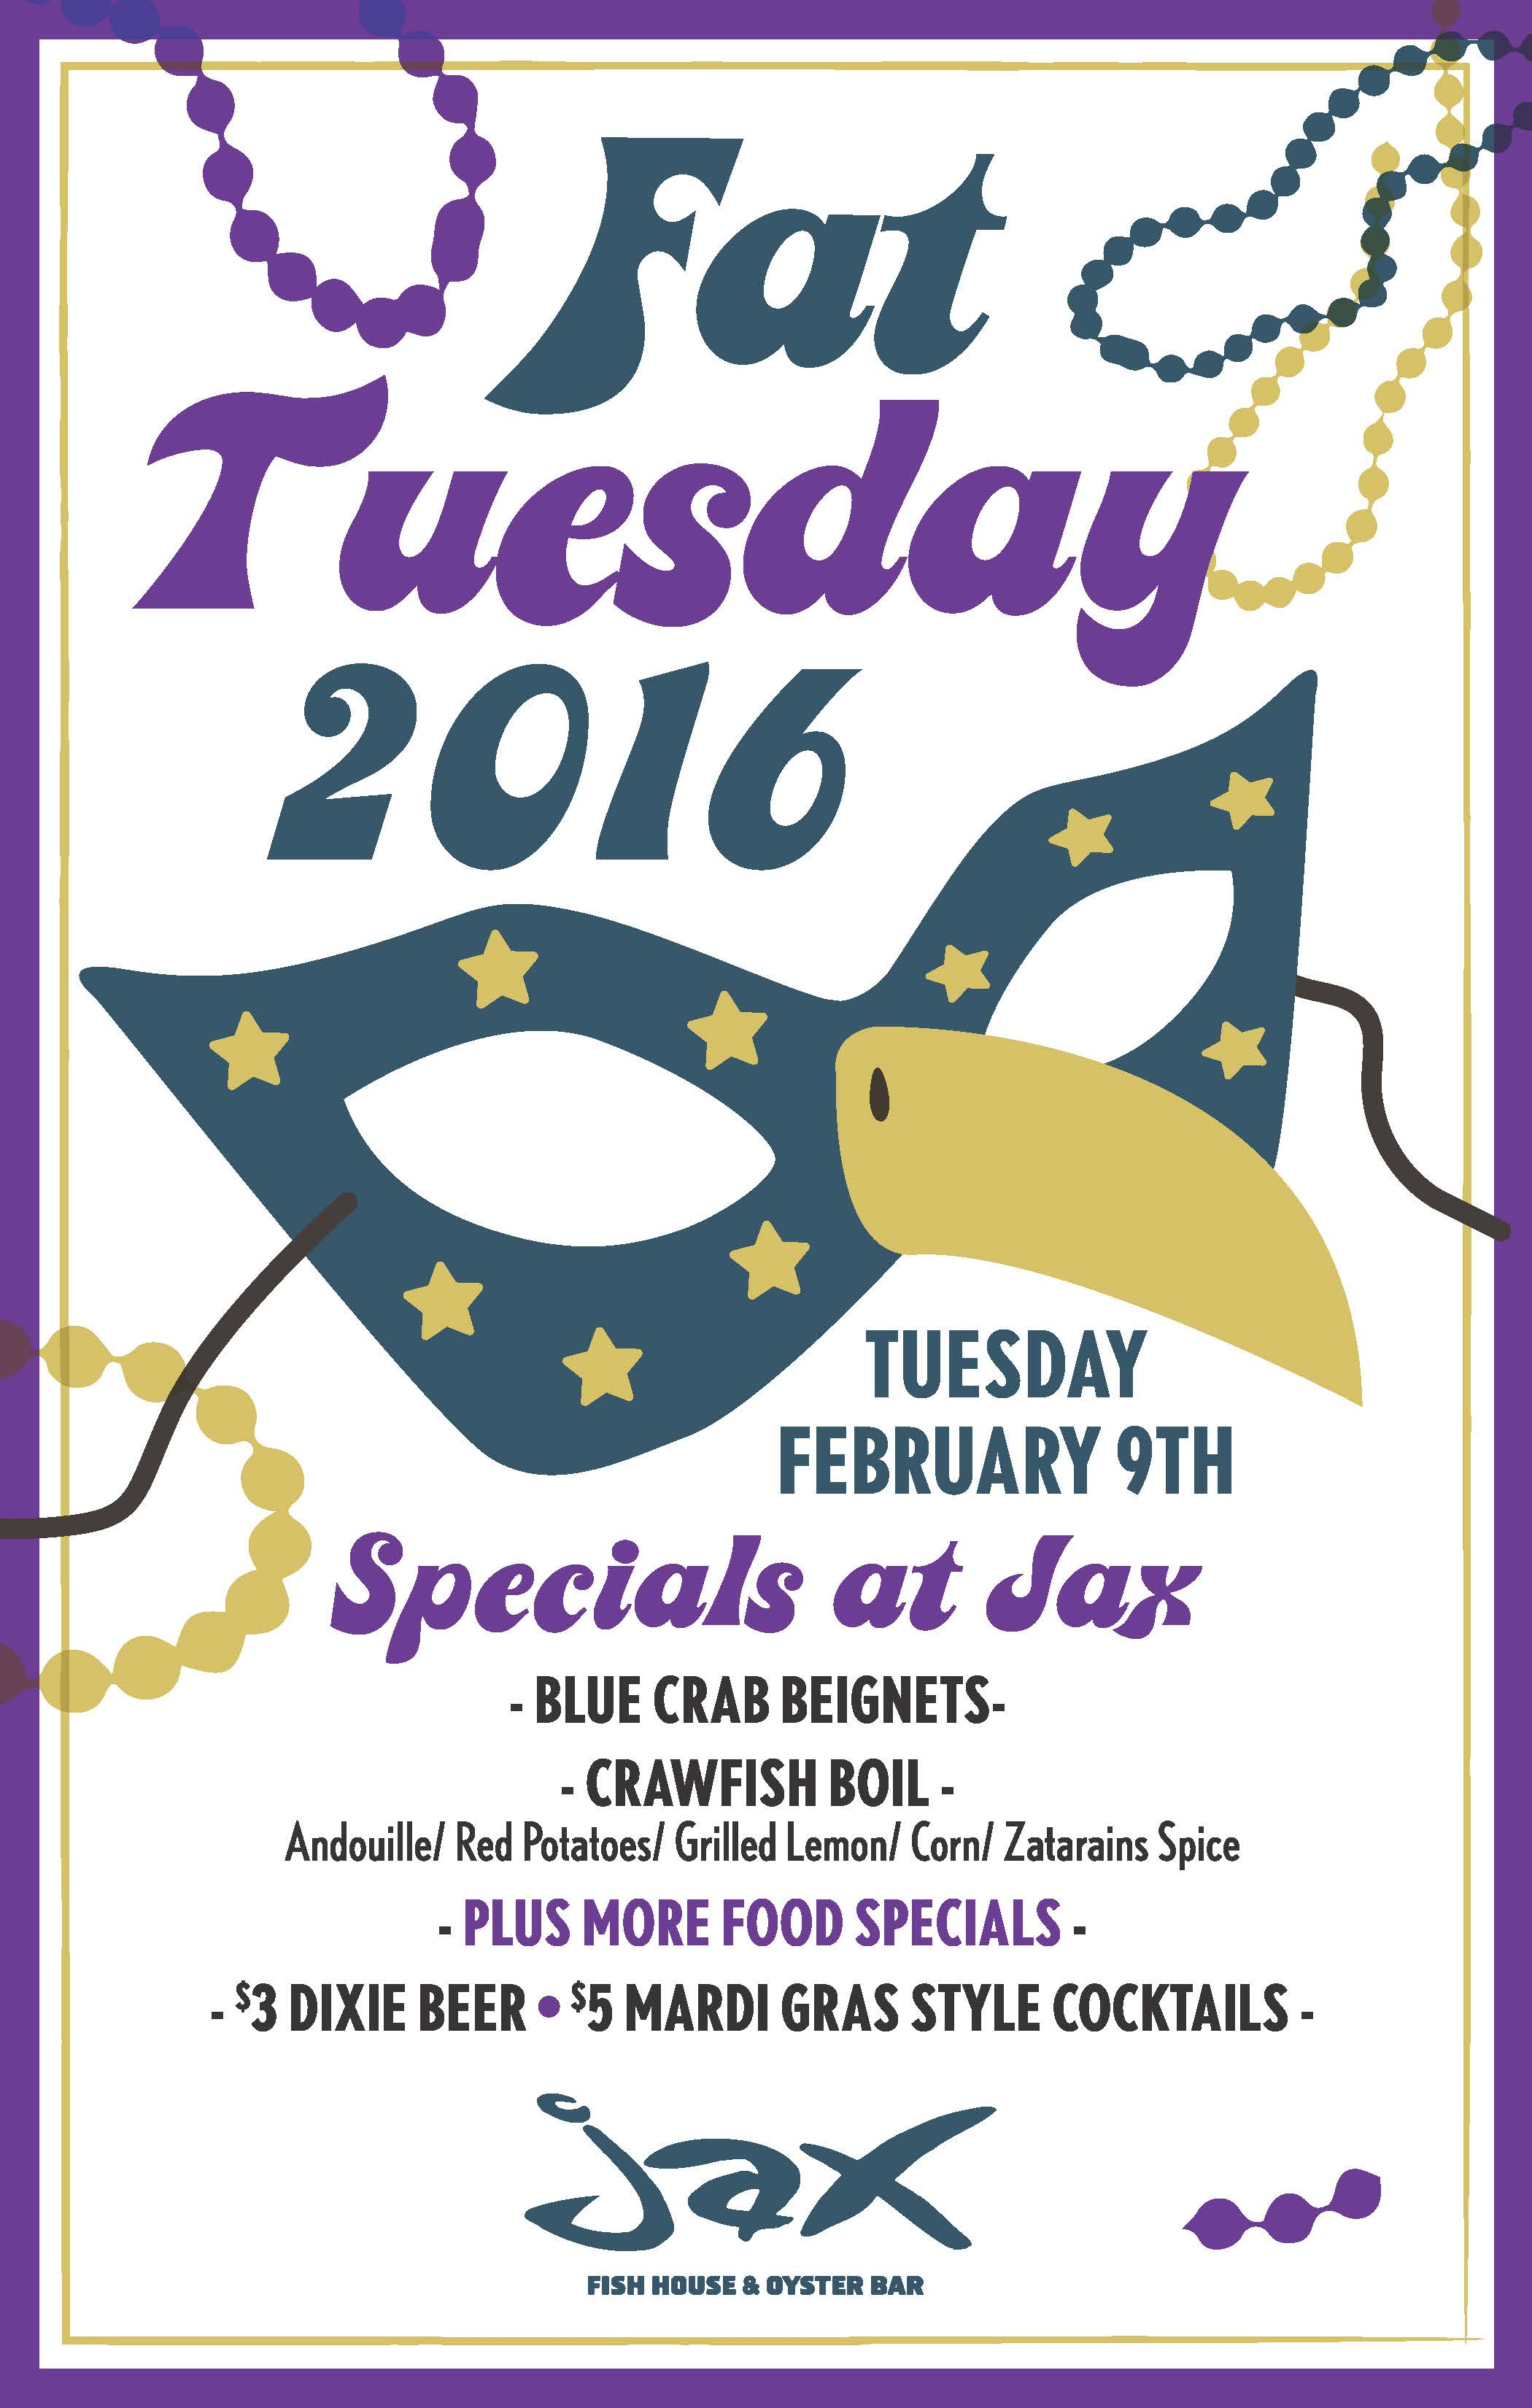 Jax fish house jaxd mardigras 2016 for Jax fish house kansas city